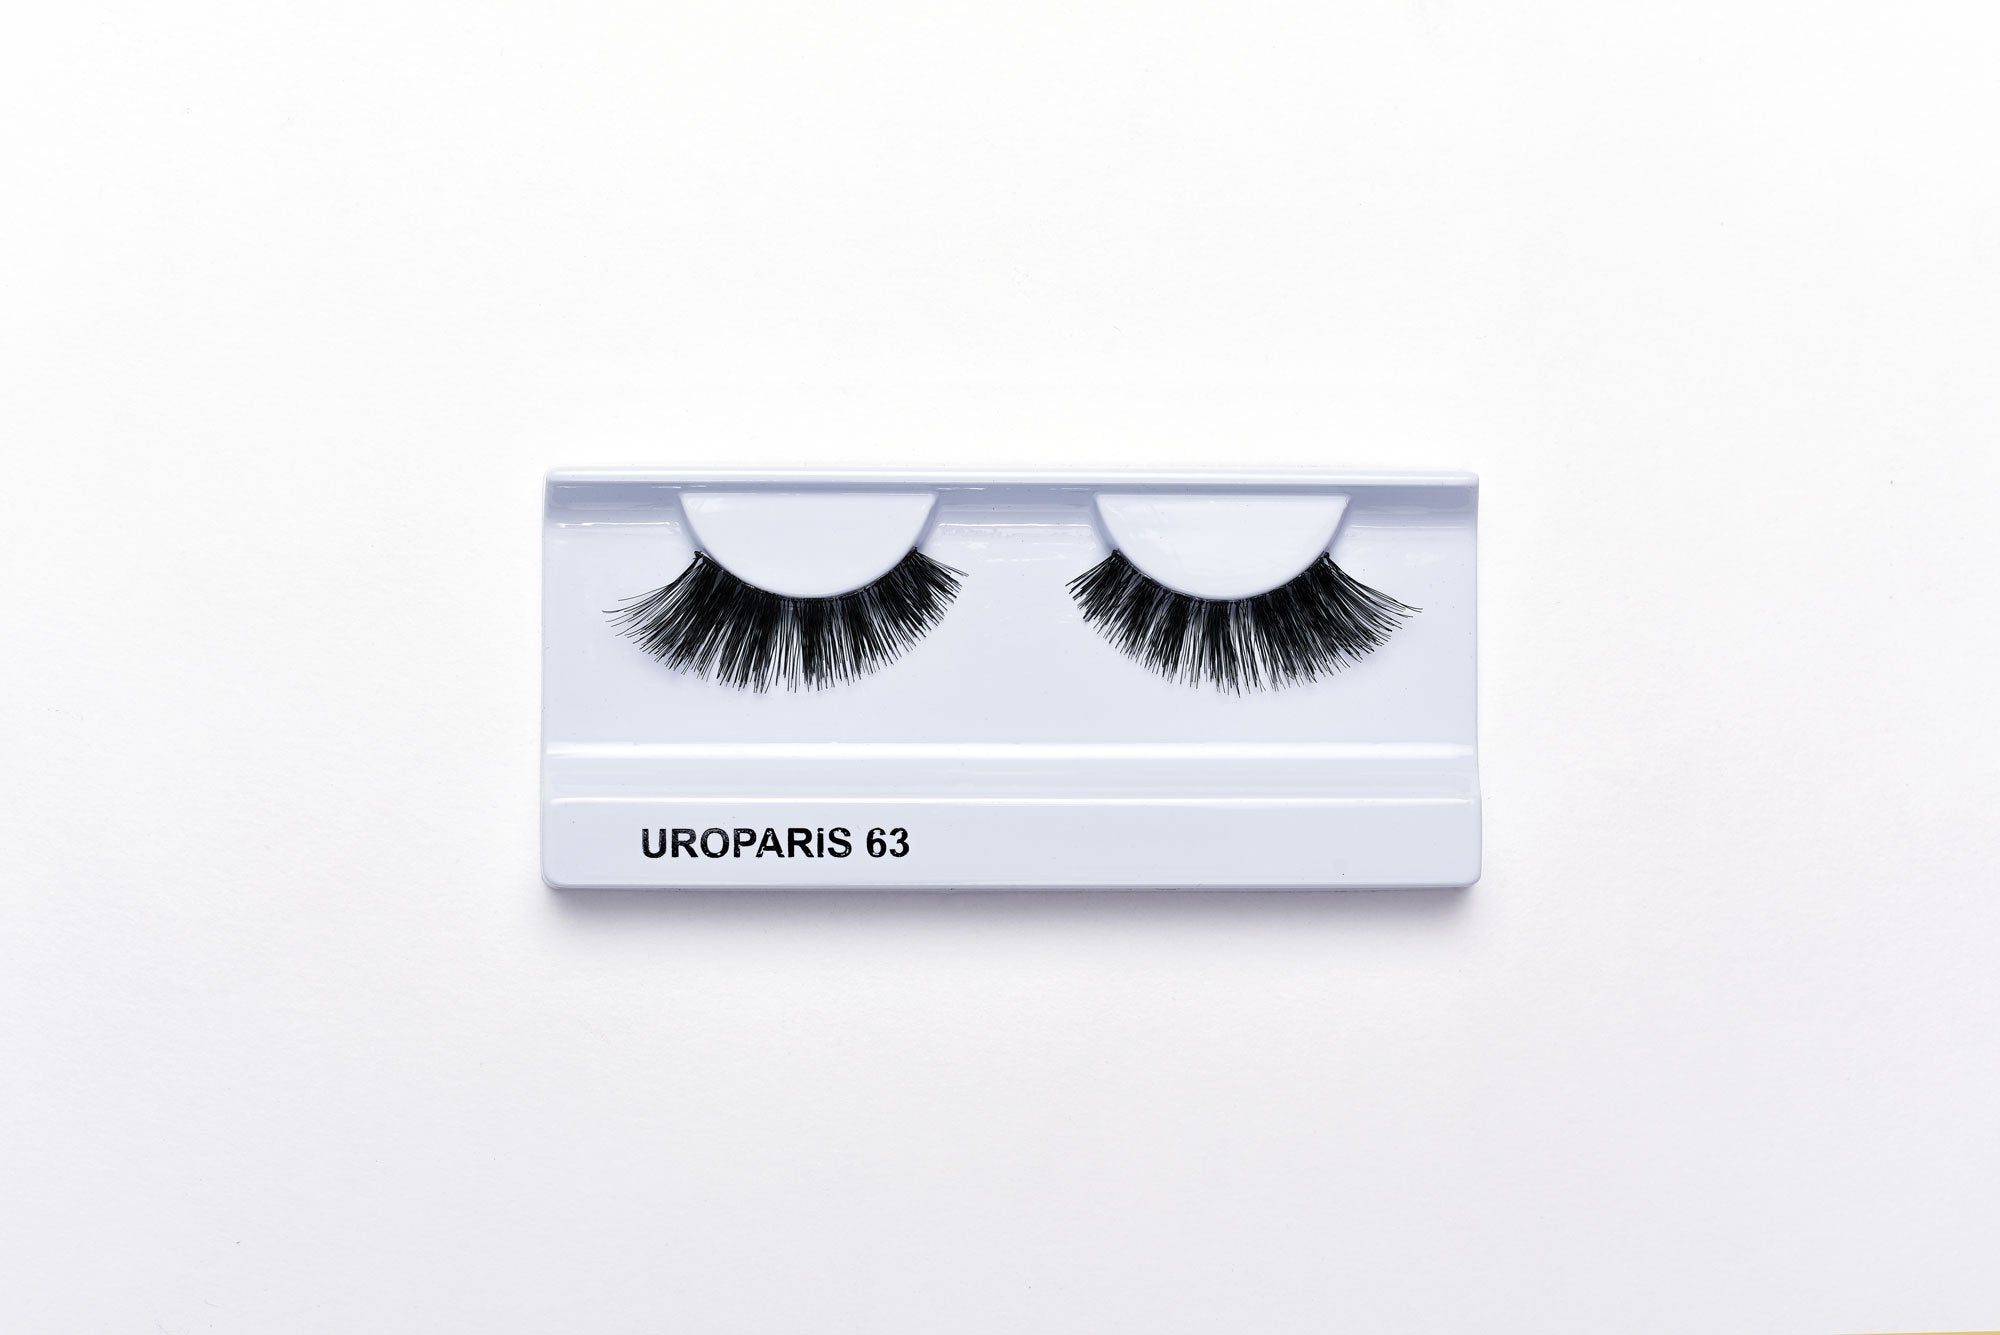 Uroparis Eyelashes 63